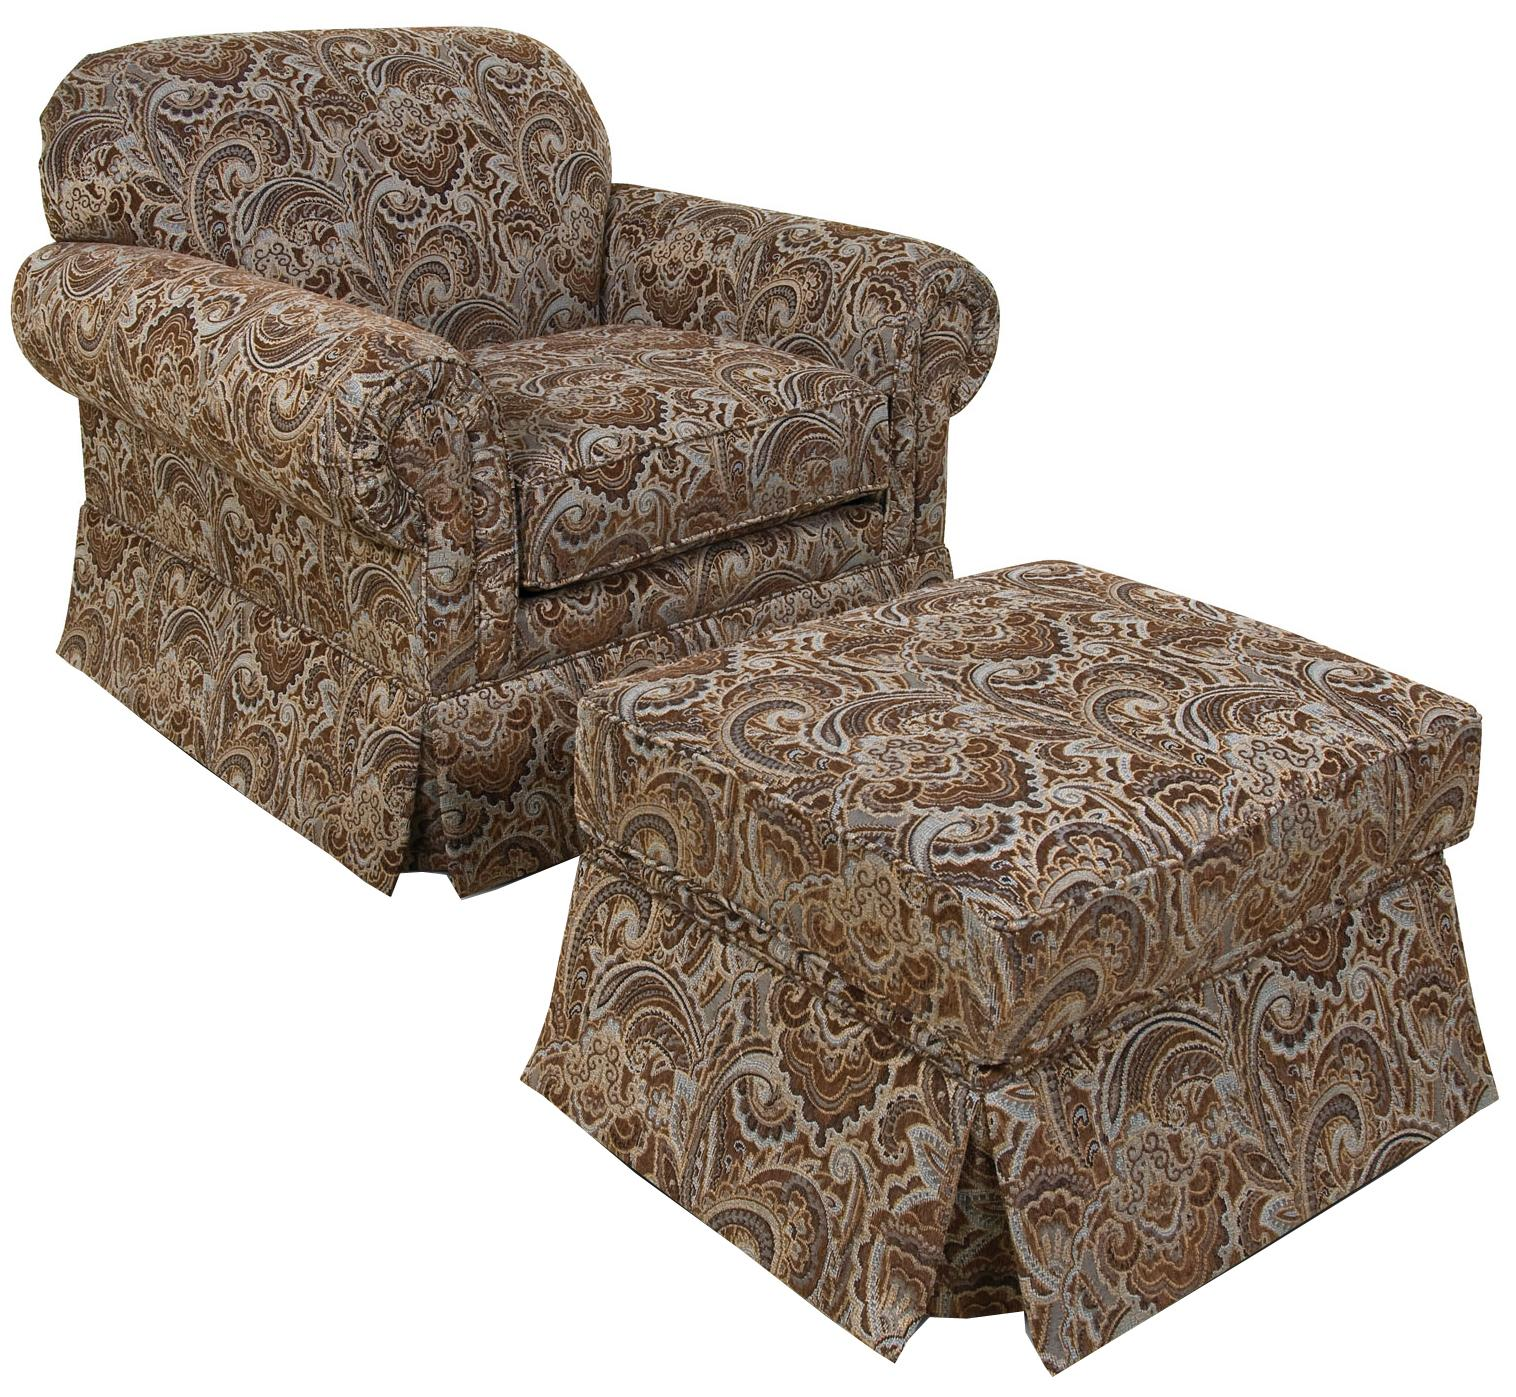 England Nancy Chair and Ottoman - Item Number: 6554+7